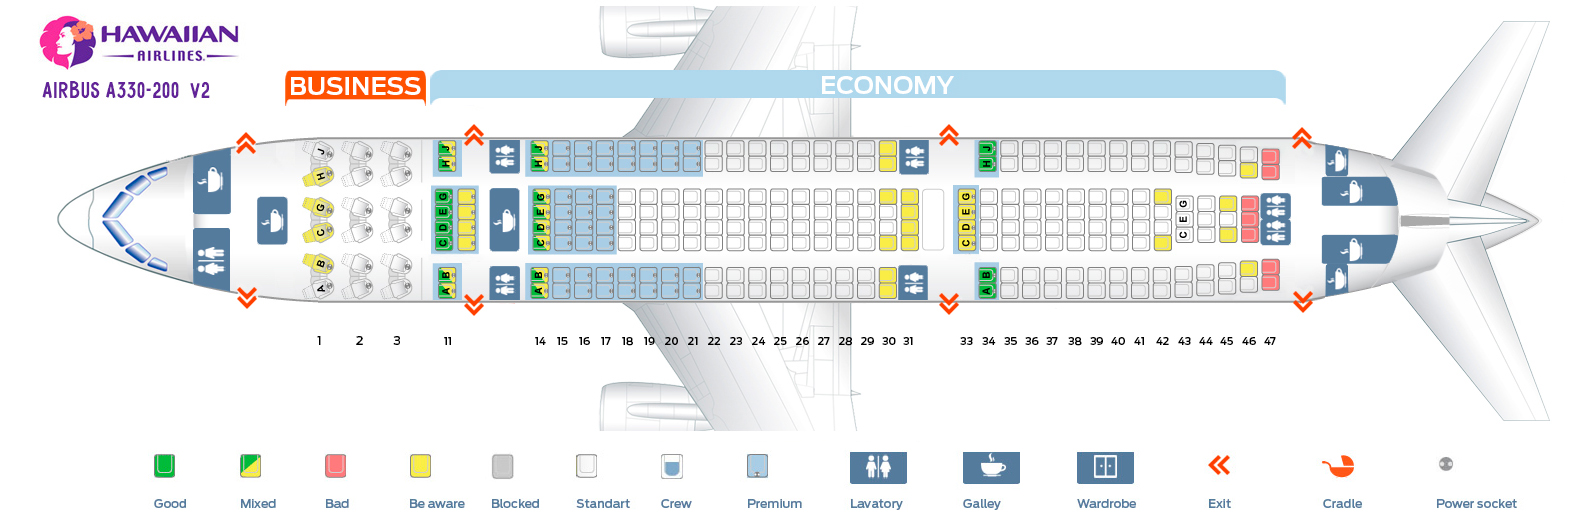 Seat map Airbus A330-200 Hawaiian airlines V2